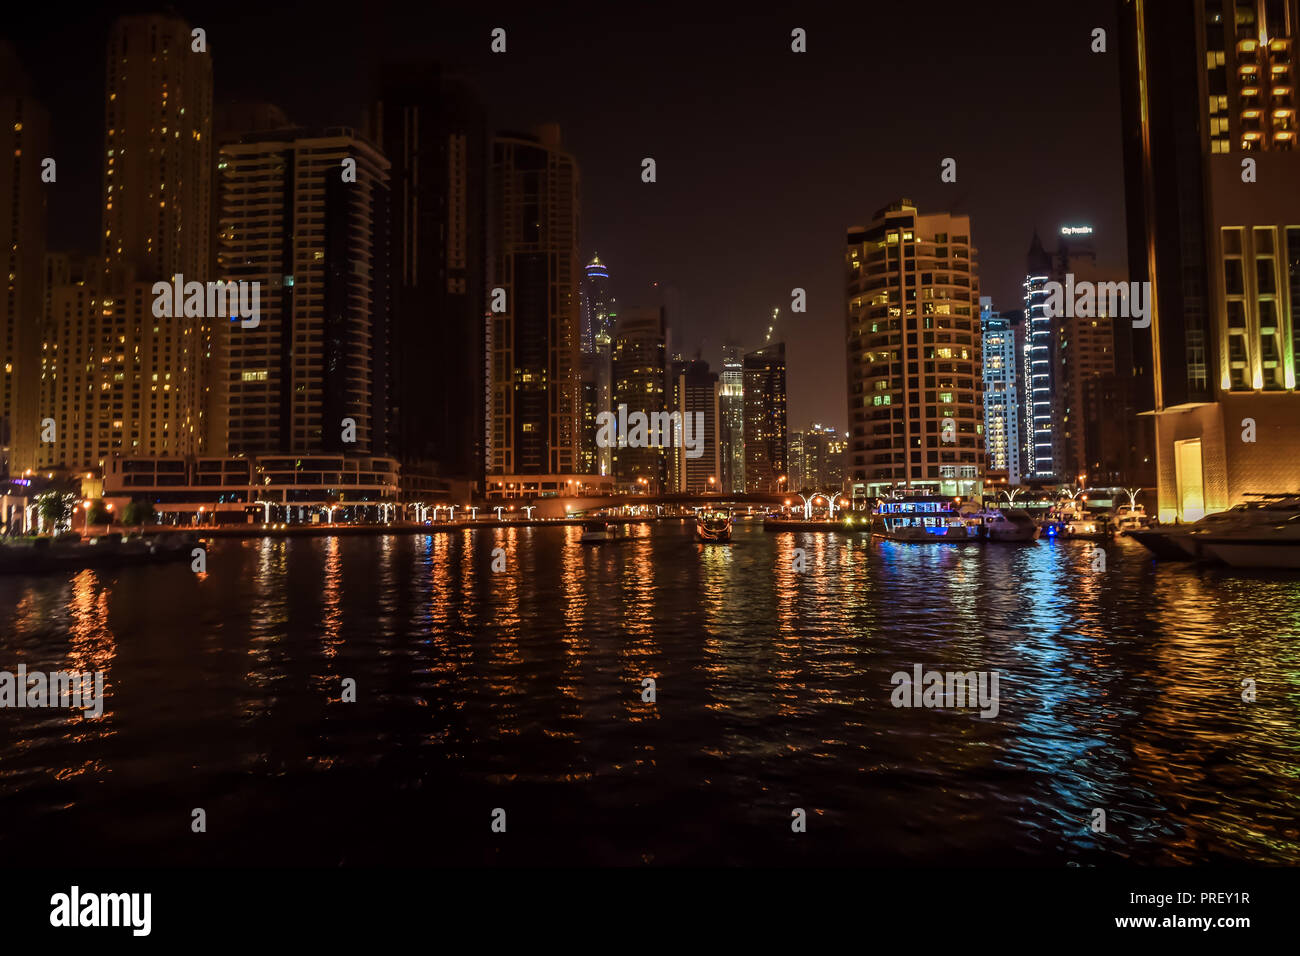 DUBAI, UNITED ARAB EMIRATES - UAE - Asia 23 APRIL 2016: Skyscrapers of City Marina at night. Panoramic skyline view lights and reflections. Famous - Stock Image